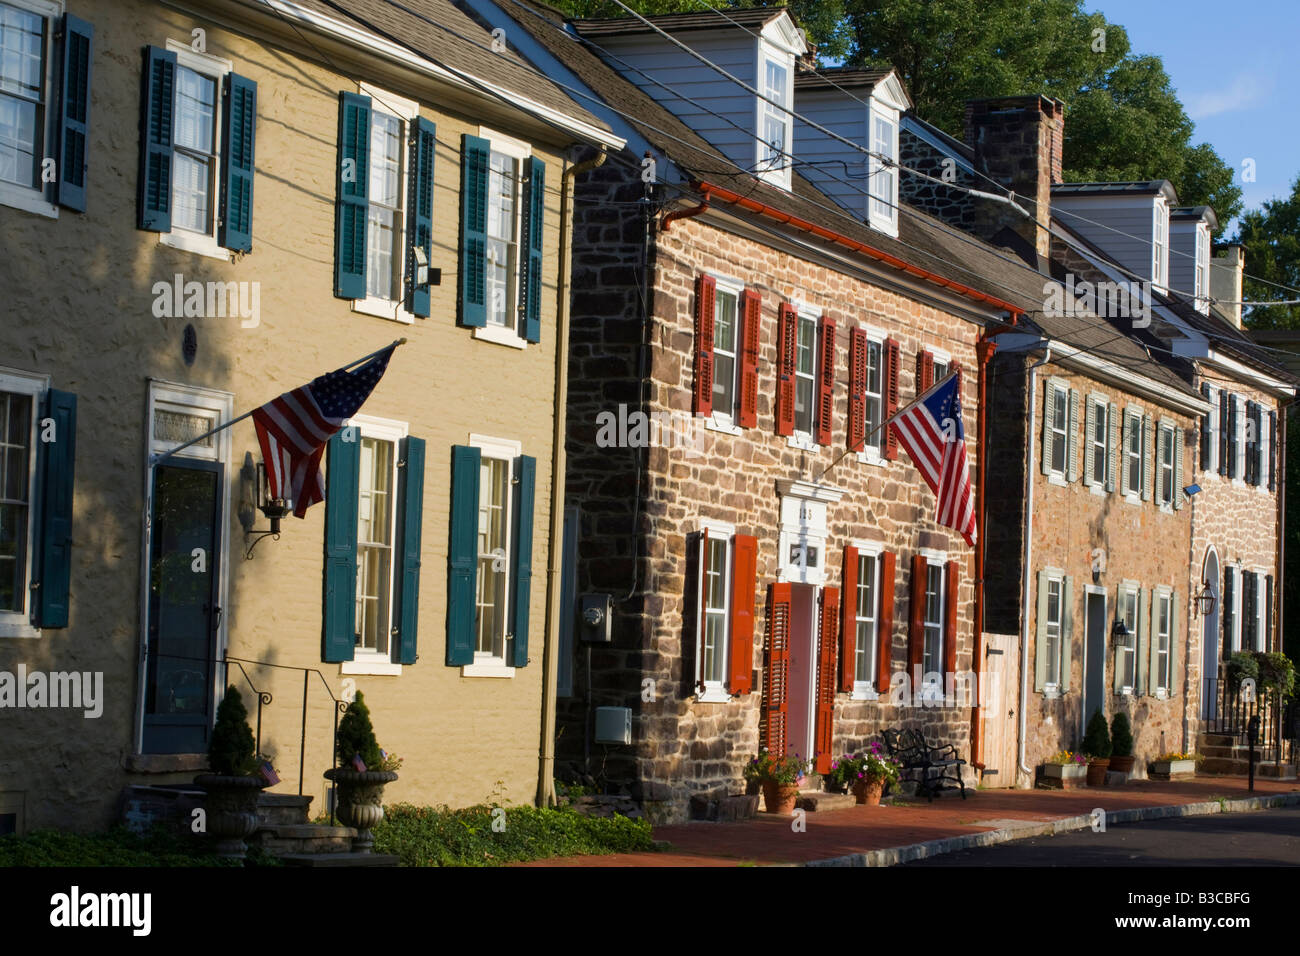 Business district of Newtown Bucks County Pennsylvania - Stock Image